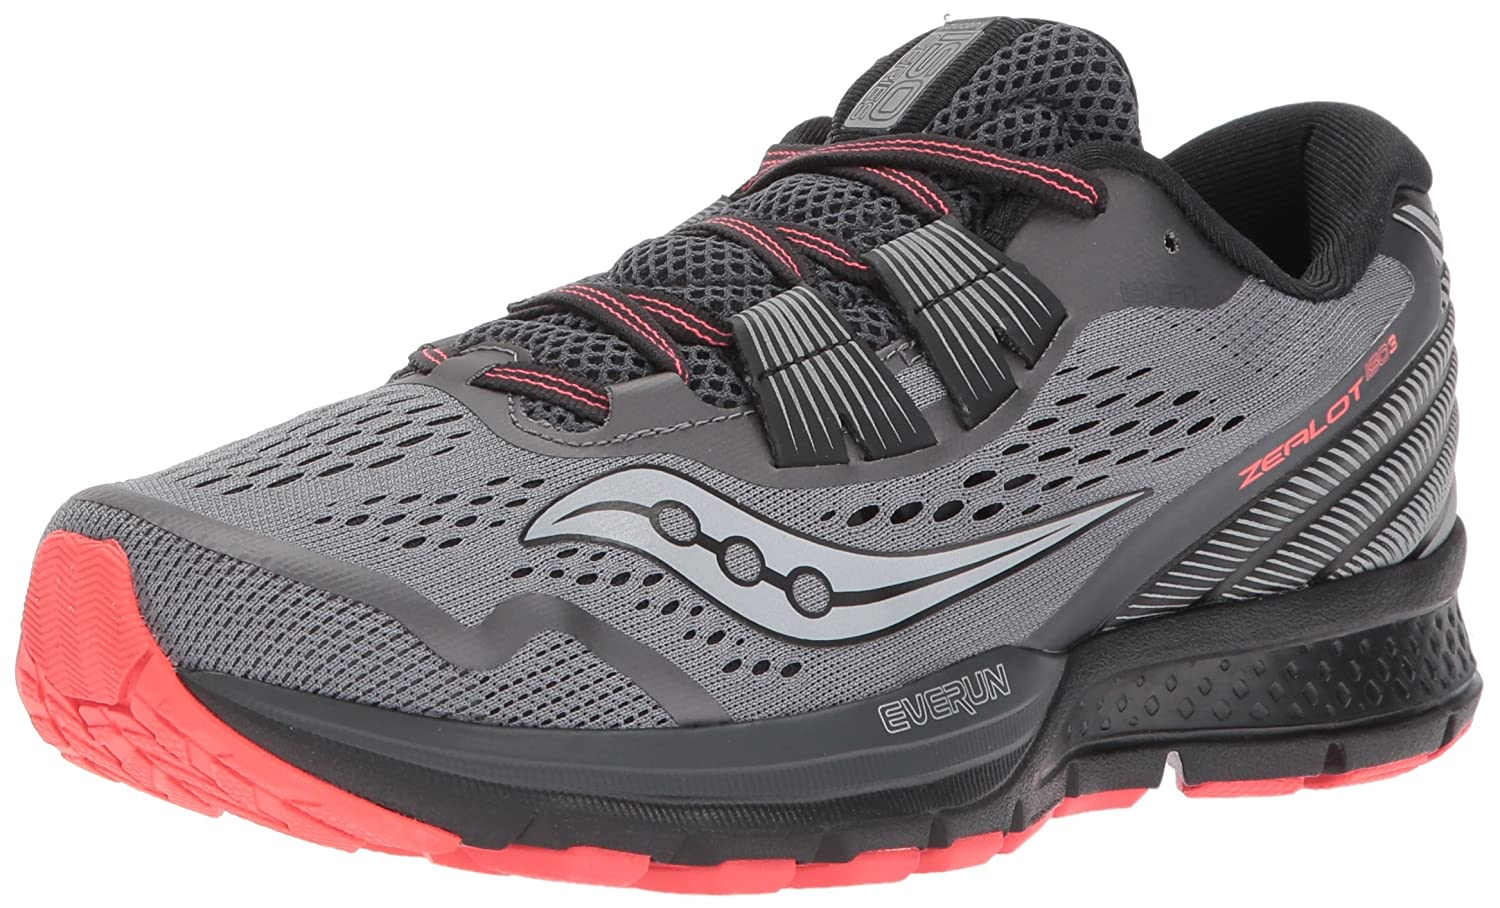 Hot Selling Saucony Zealot ISO 3 De las mujeres Running Shoes